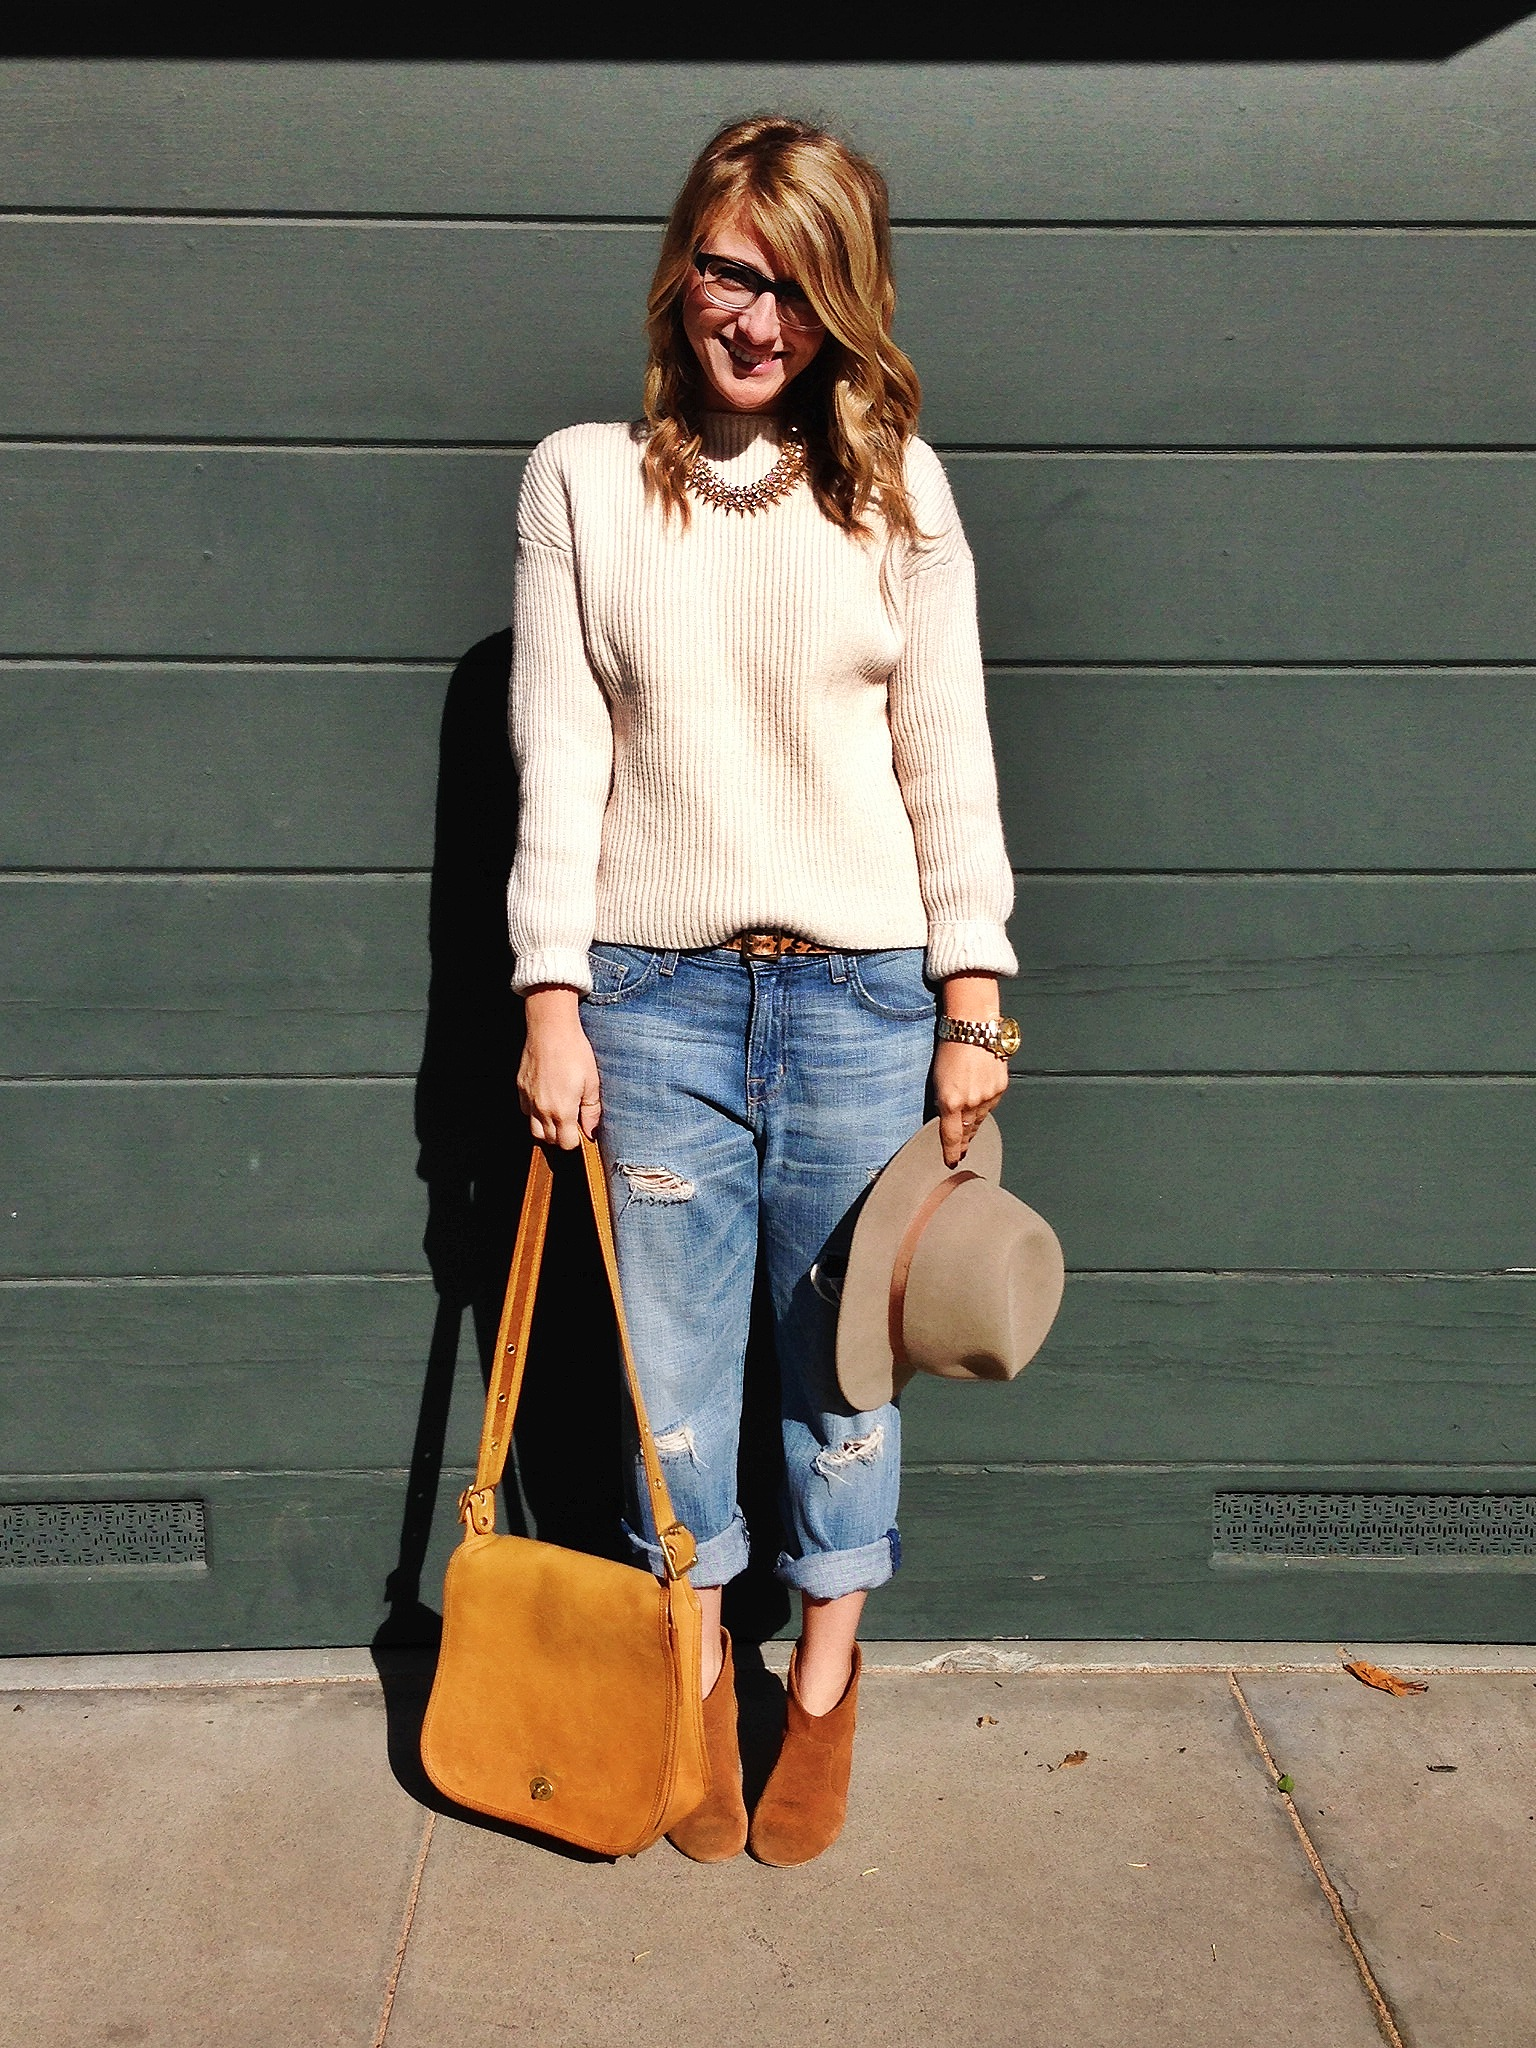 Sweater: H&M via Crossroads Trading | Jeans: Current/Elliot via Crossroads Trading | Shoes: Carlos Santana | Purse: Coach | Necklace: H&M | Hat: Sidewalk sale